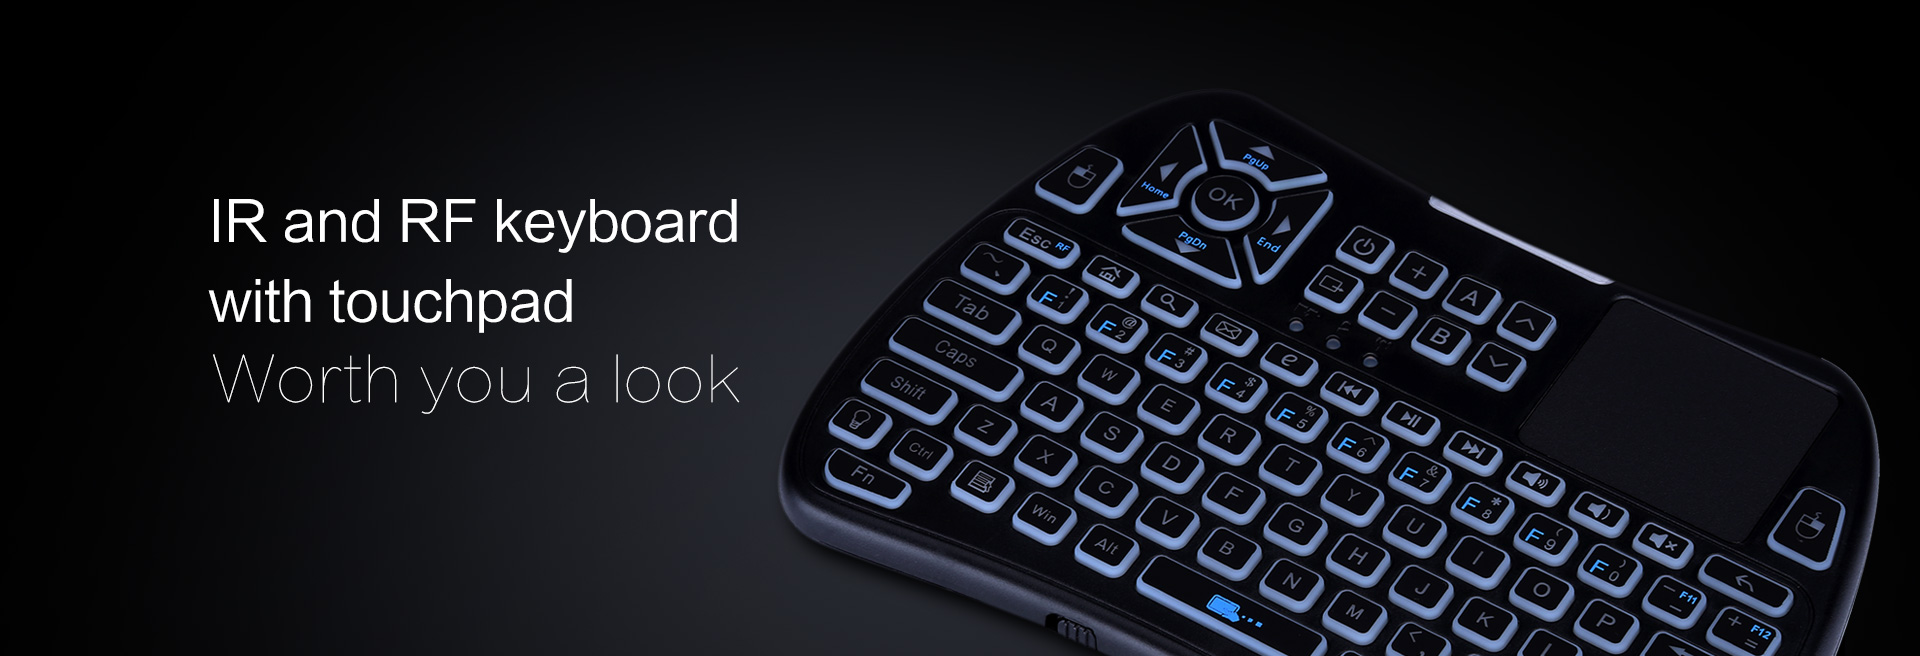 iPazzPort IR USB touchpad keyboard